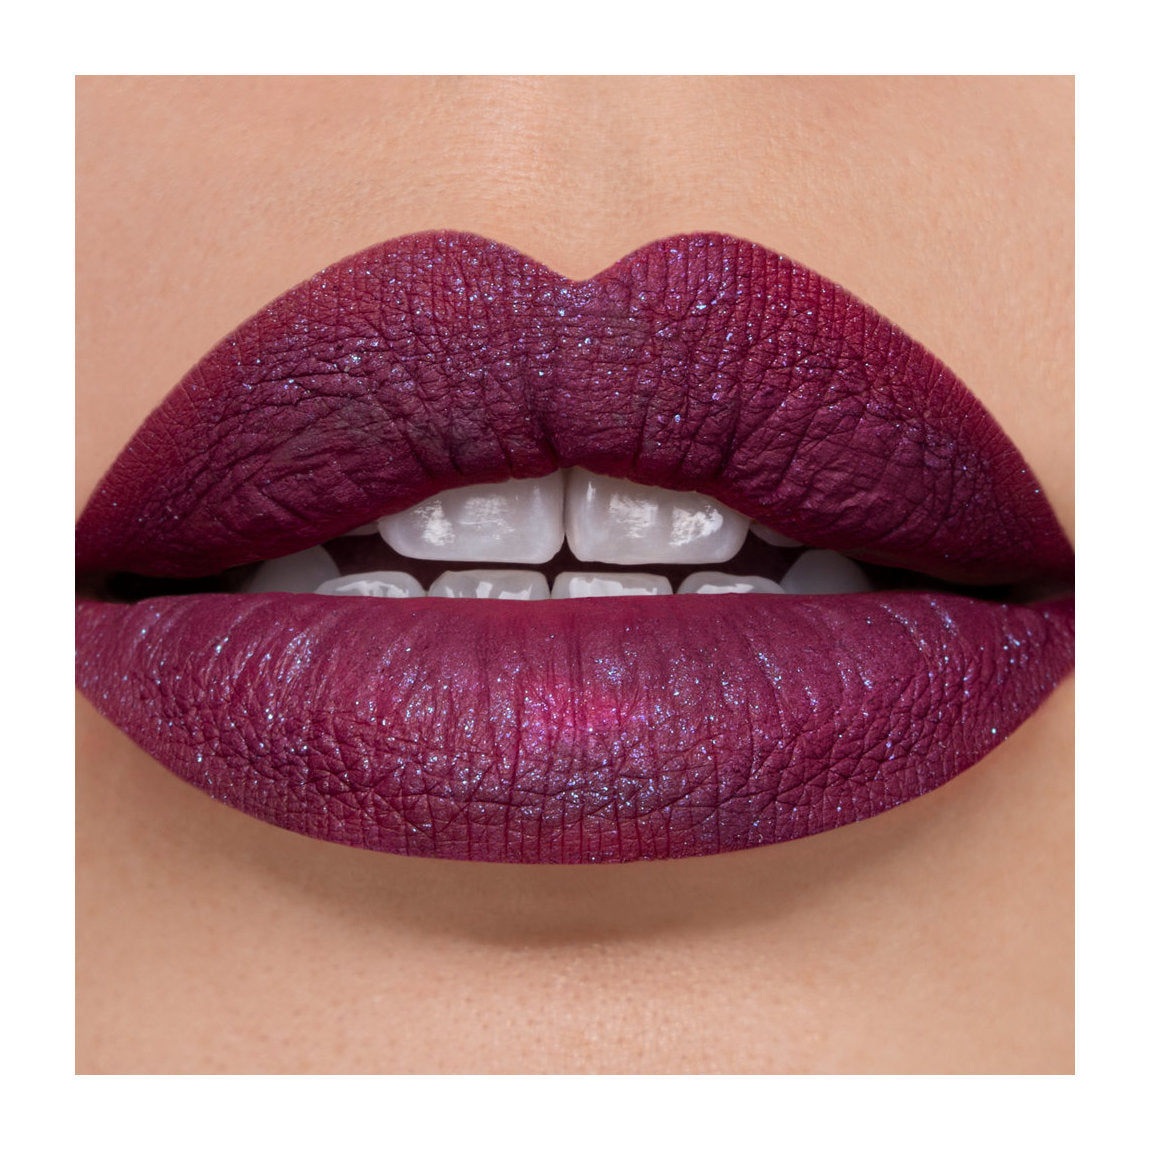 Hijinx-Liquid Lip Color